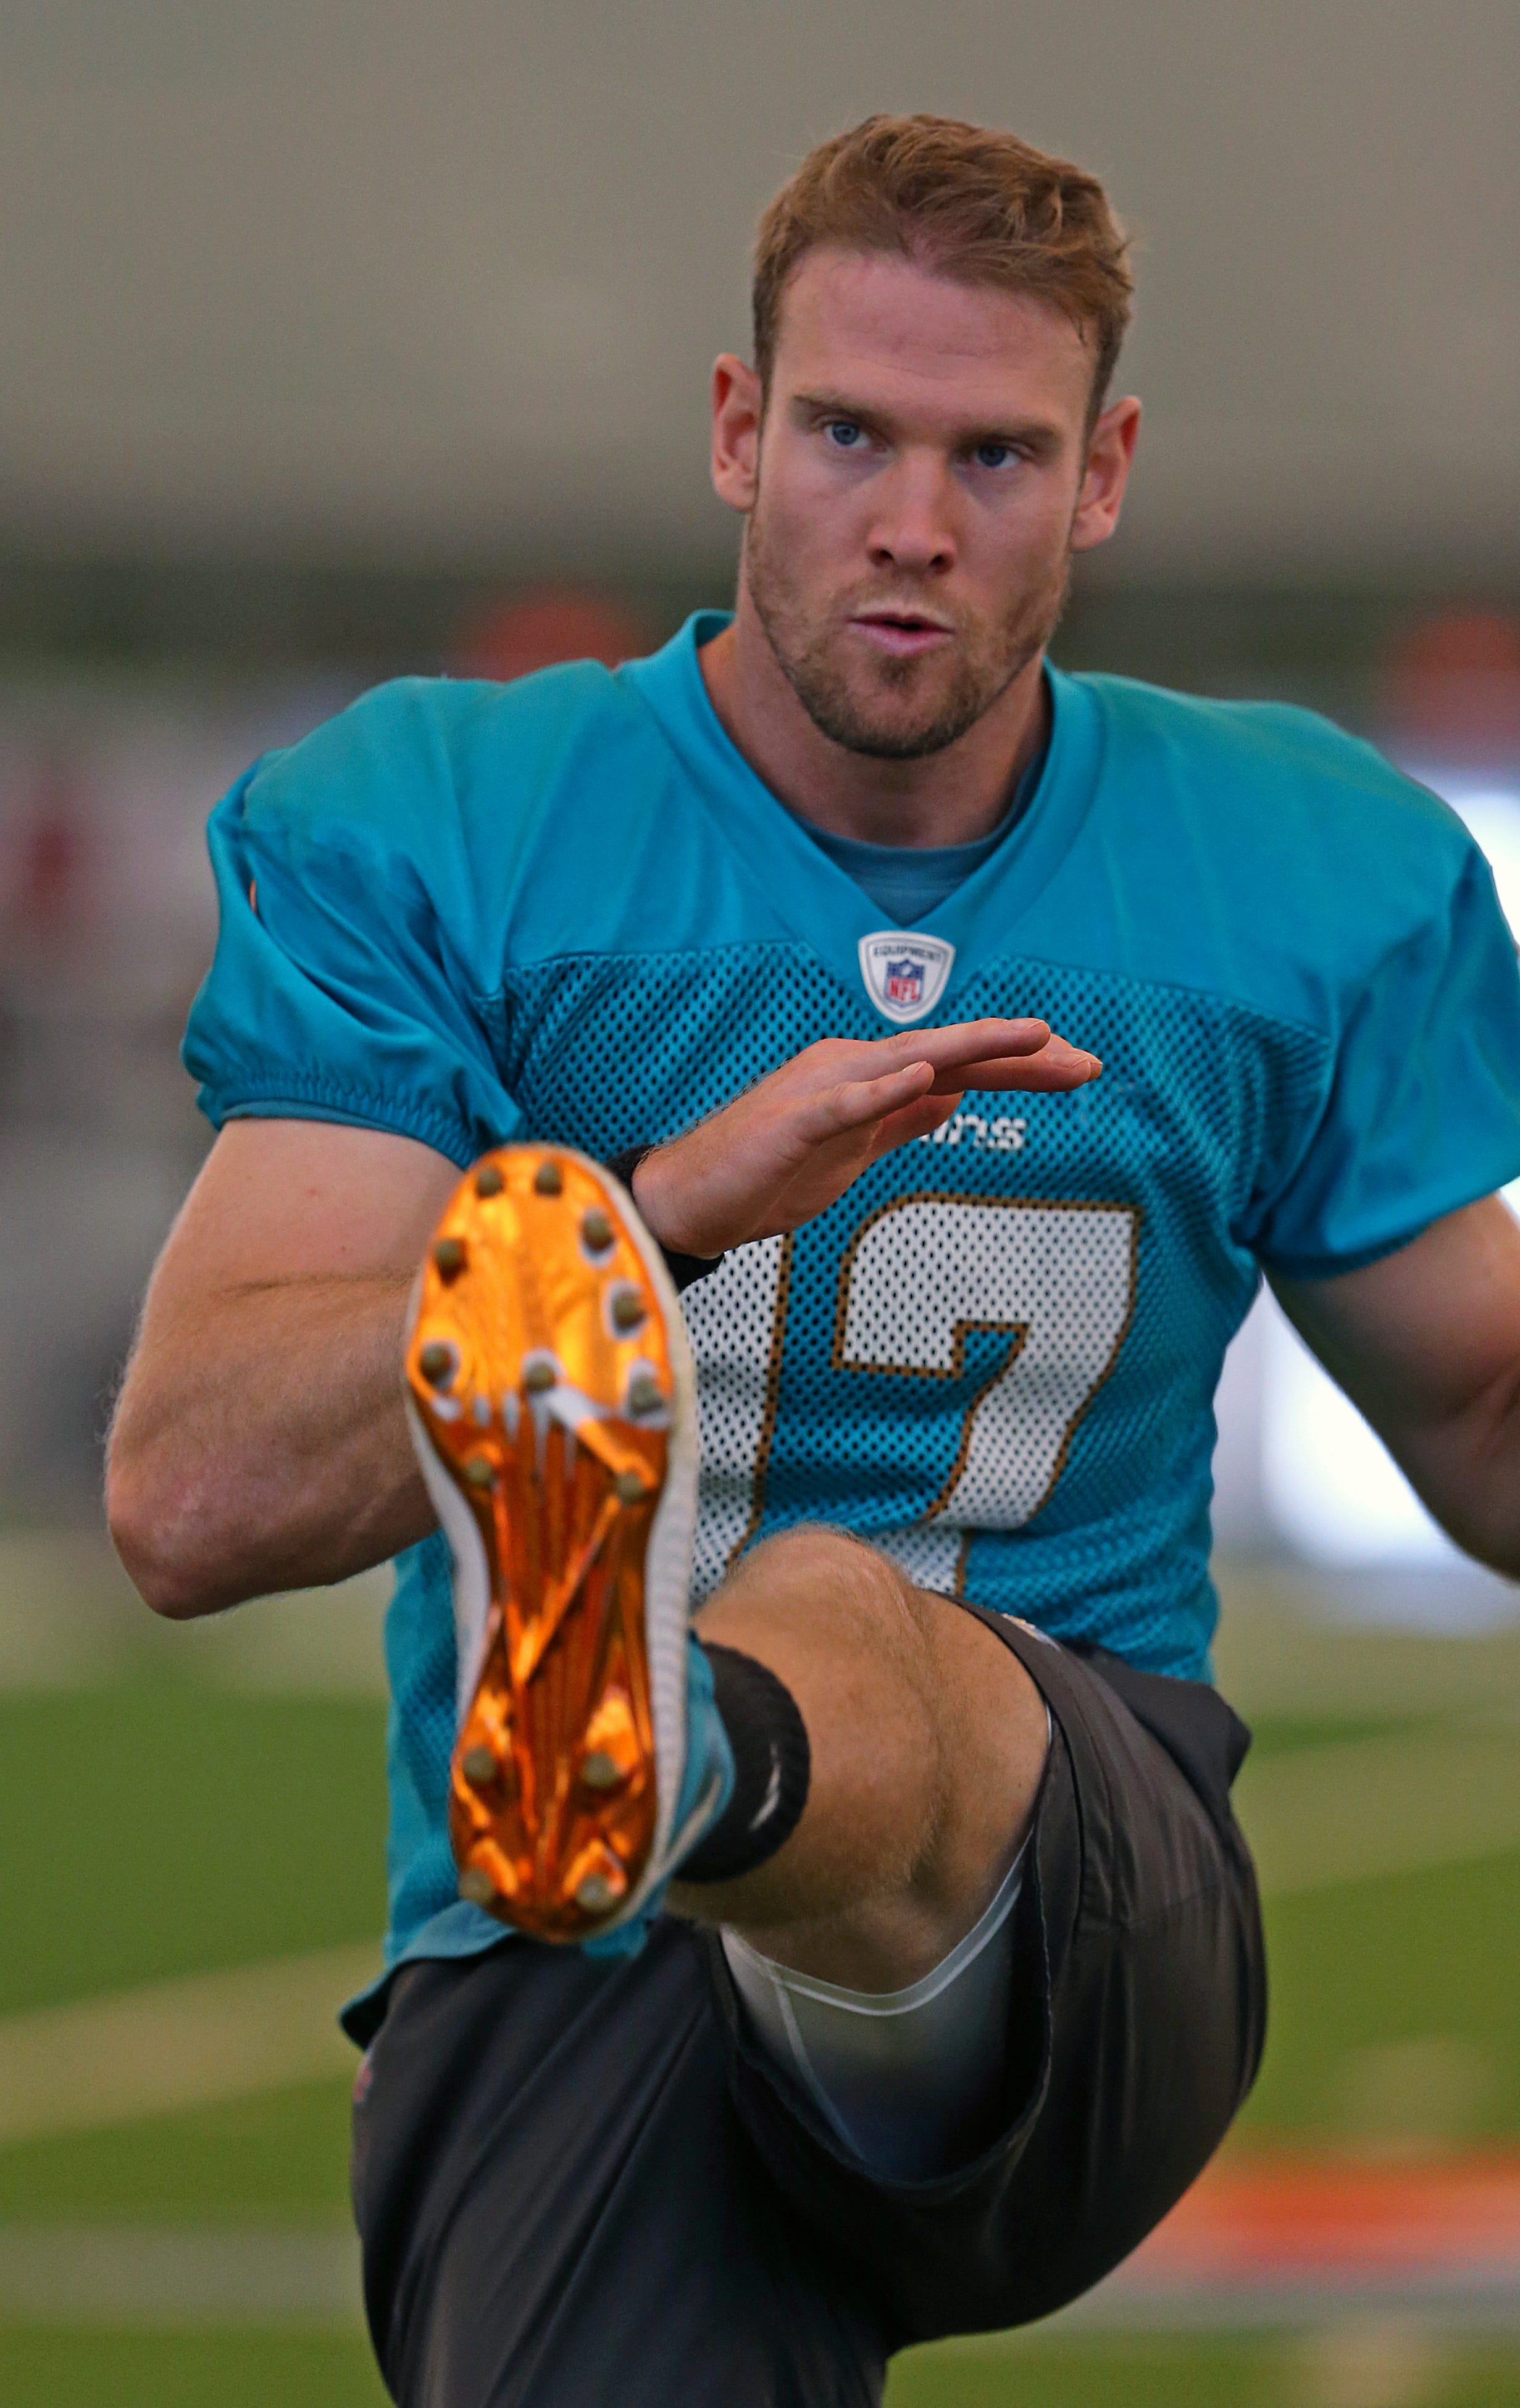 Miami's Tannehill on schedule for possible return this week